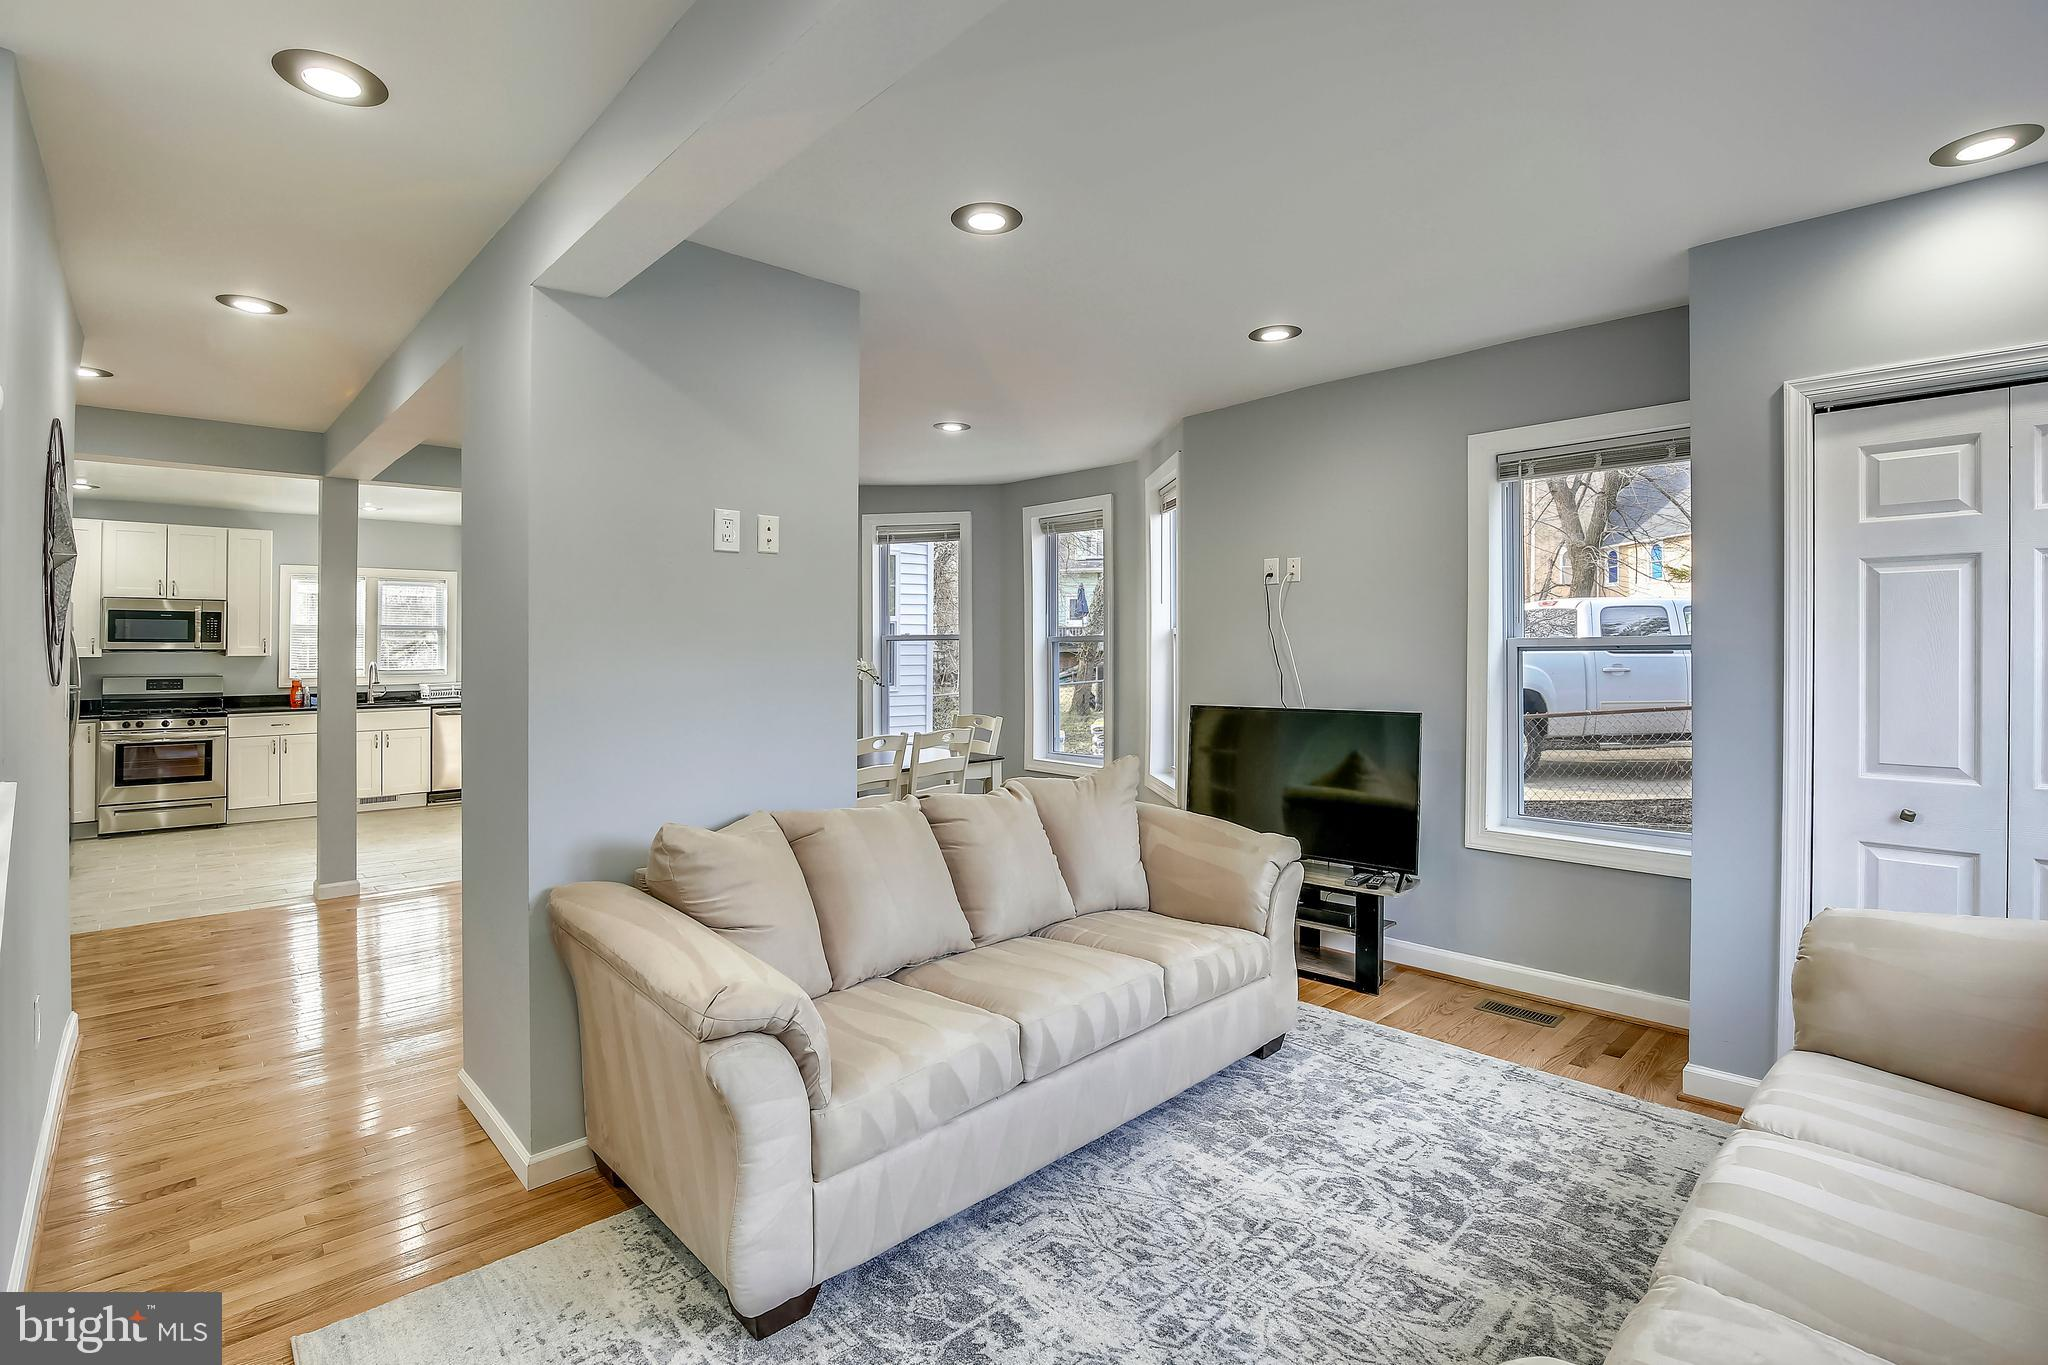 3701 JACKSON AVENUE, BRENTWOOD, MD 20722